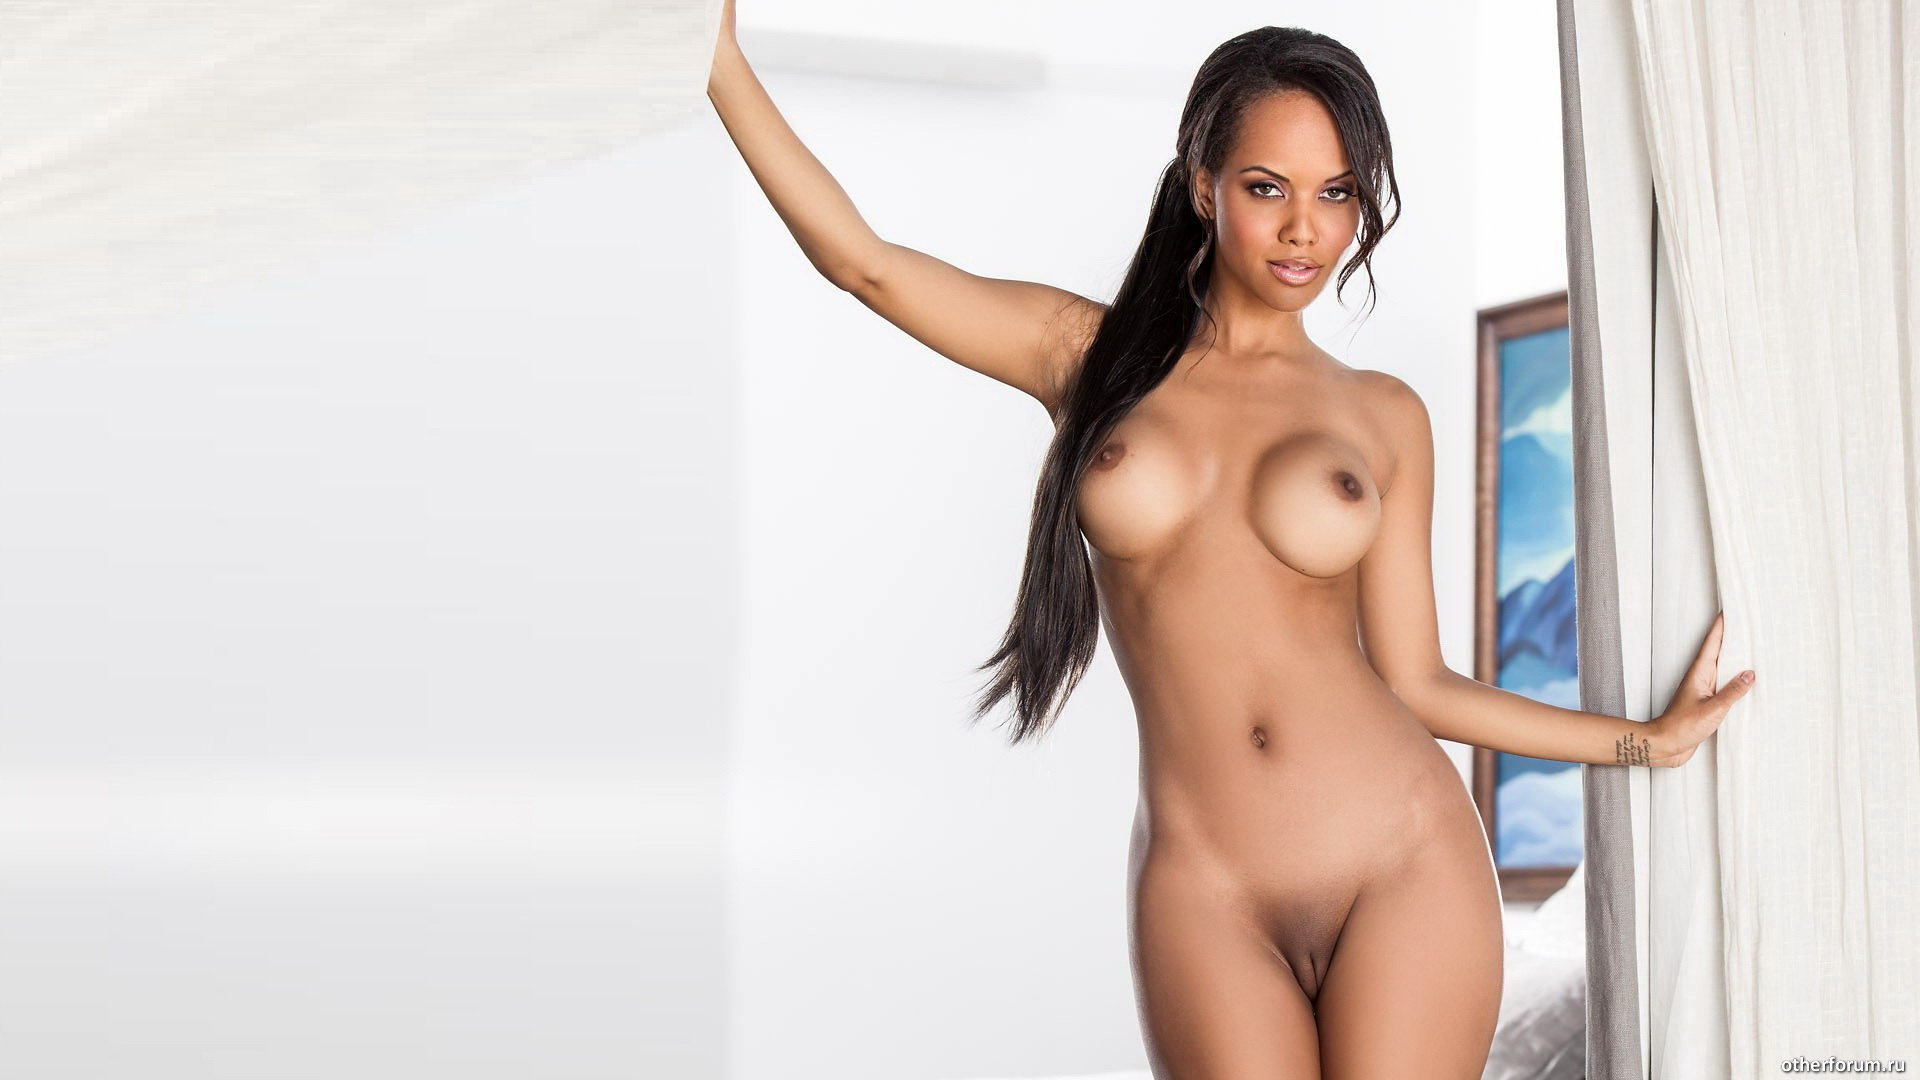 Carmen lopez free naked picture